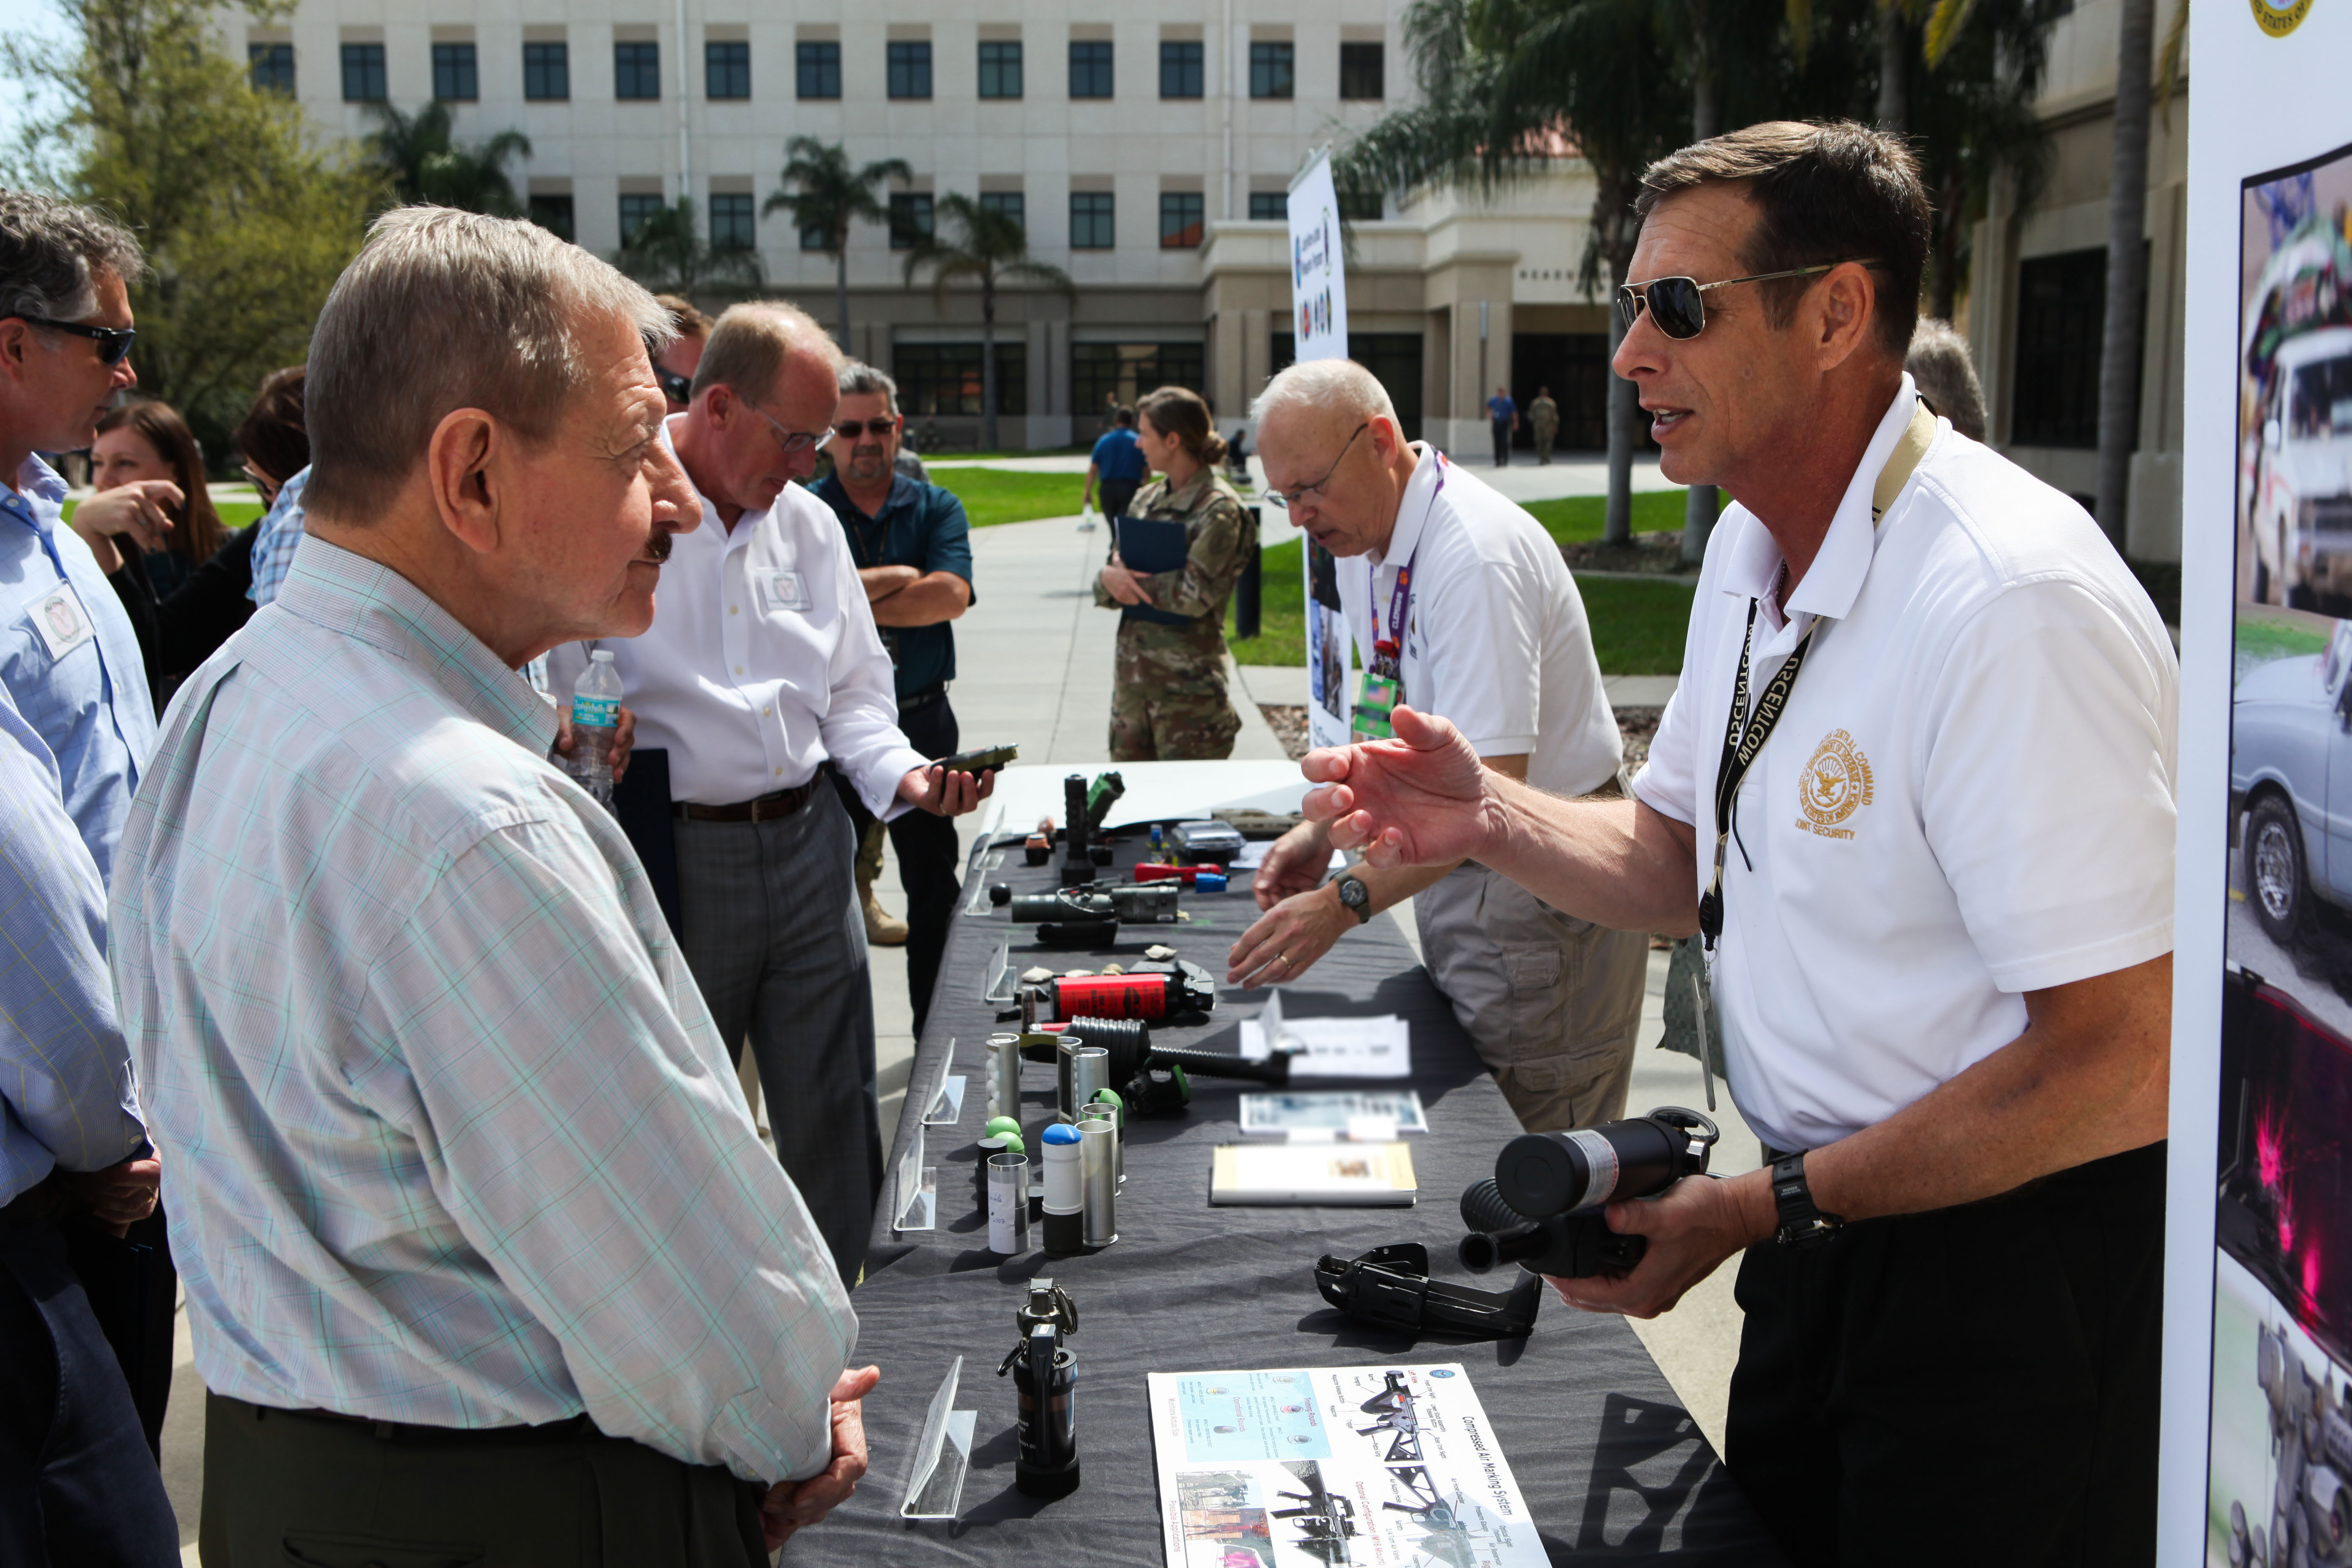 NLW Displayed for Local Business Leaders at MacDill AFB